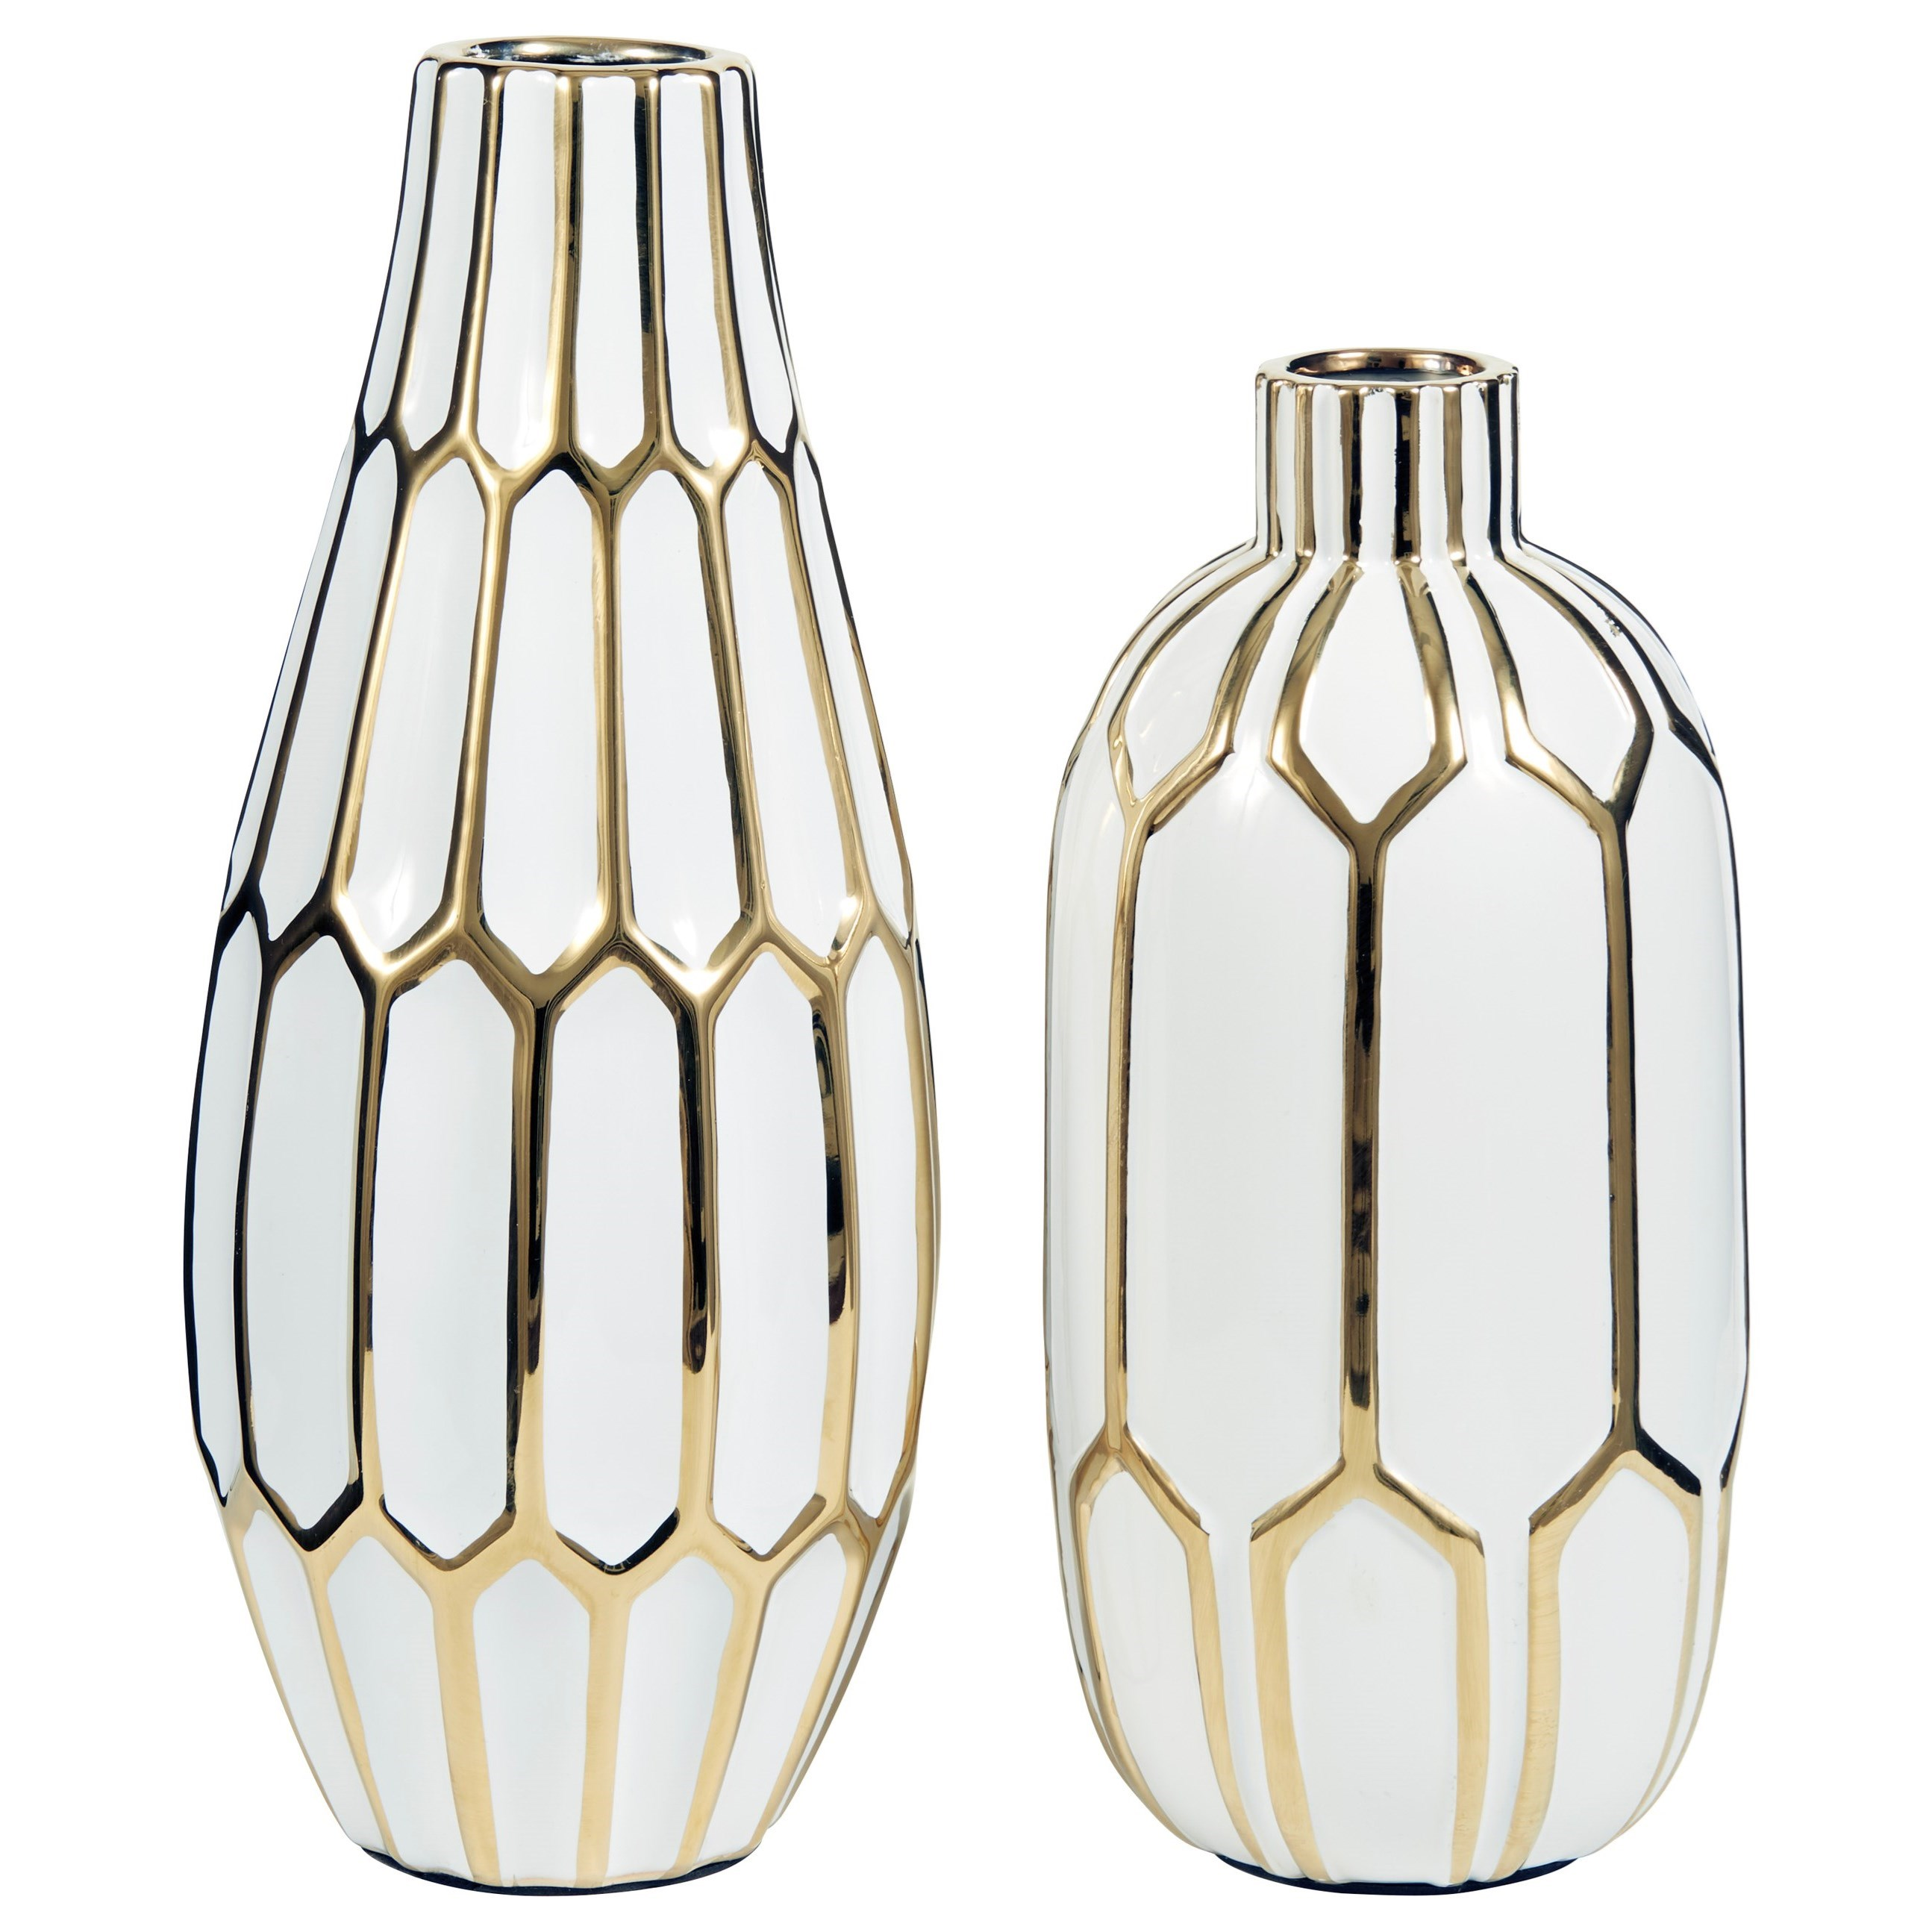 Accents Mohsen Gold Finish/White Vase Set by Benchcraft at Virginia Furniture Market